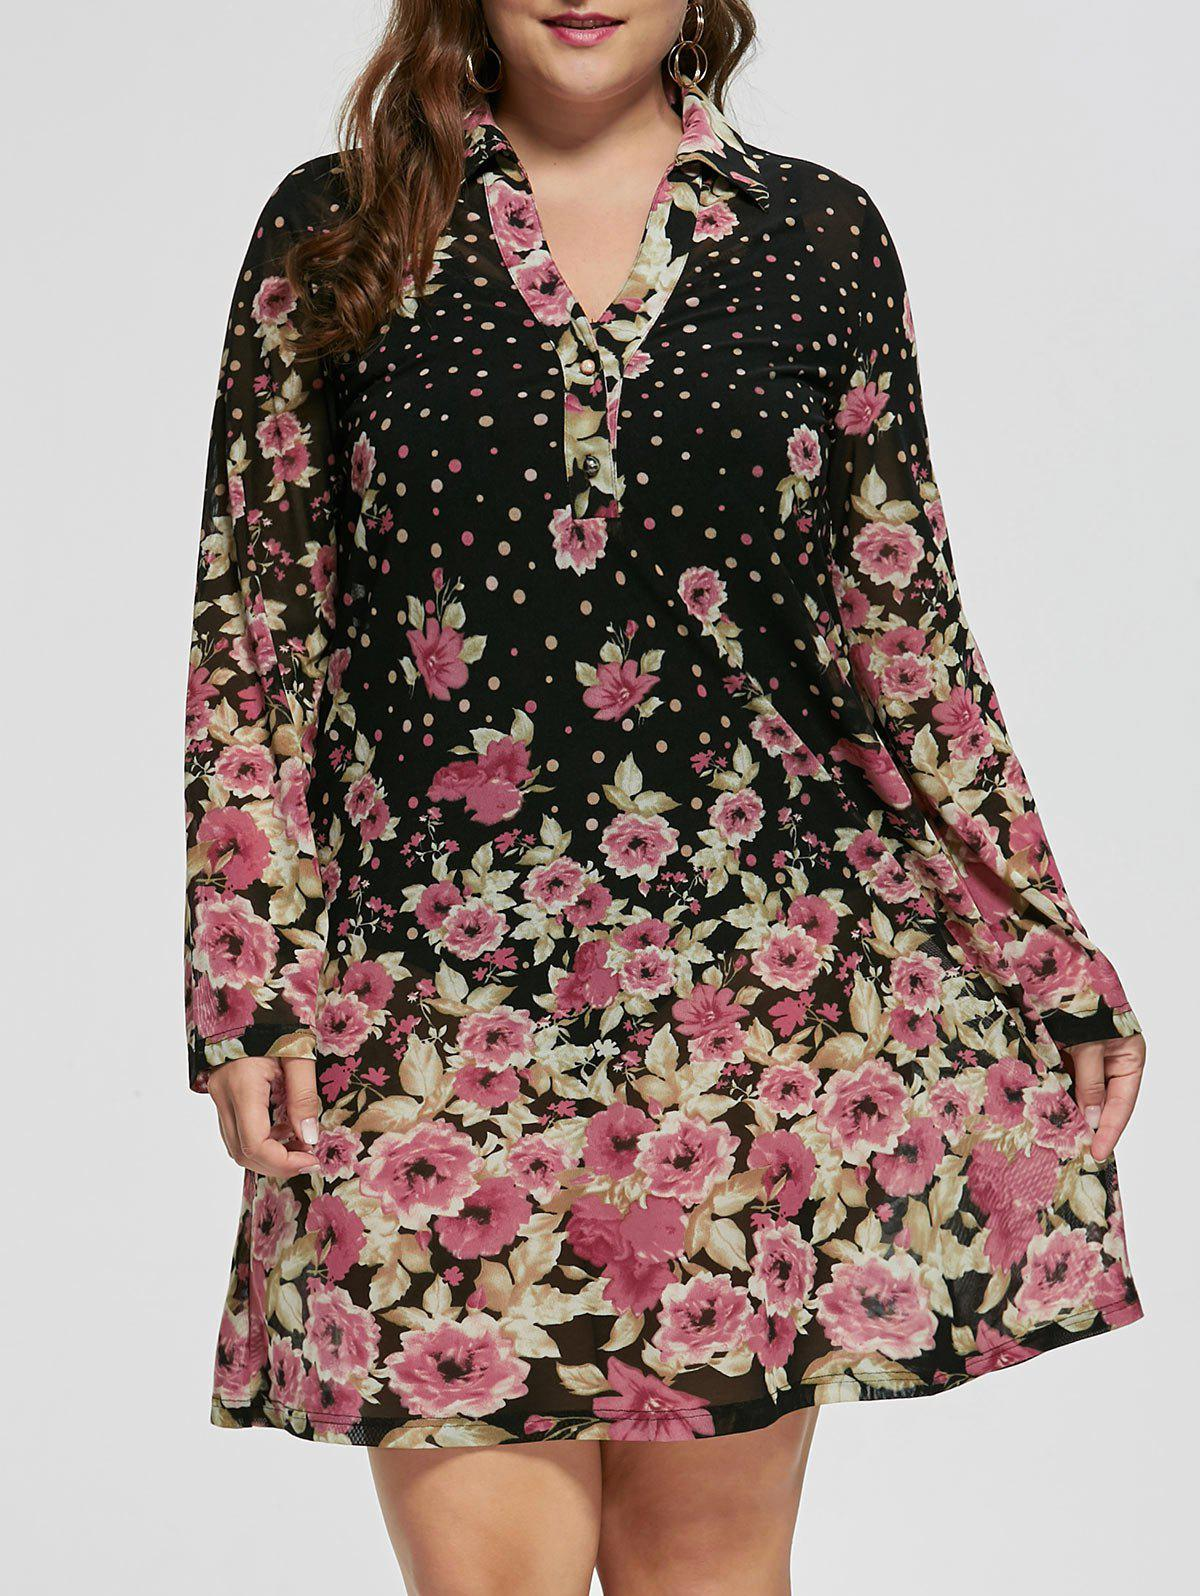 Plus Size Sheer Floral Long Sleeve DressWOMEN<br><br>Size: 5XL; Color: BLACK; Style: Brief; Material: Polyester,Spandex; Silhouette: A-Line; Dresses Length: Knee-Length; Neckline: Shirt Collar; Sleeve Length: Long Sleeves; Pattern Type: Floral; With Belt: No; Season: Fall,Spring; Weight: 0.3200kg; Package Contents: 1 x Dress;